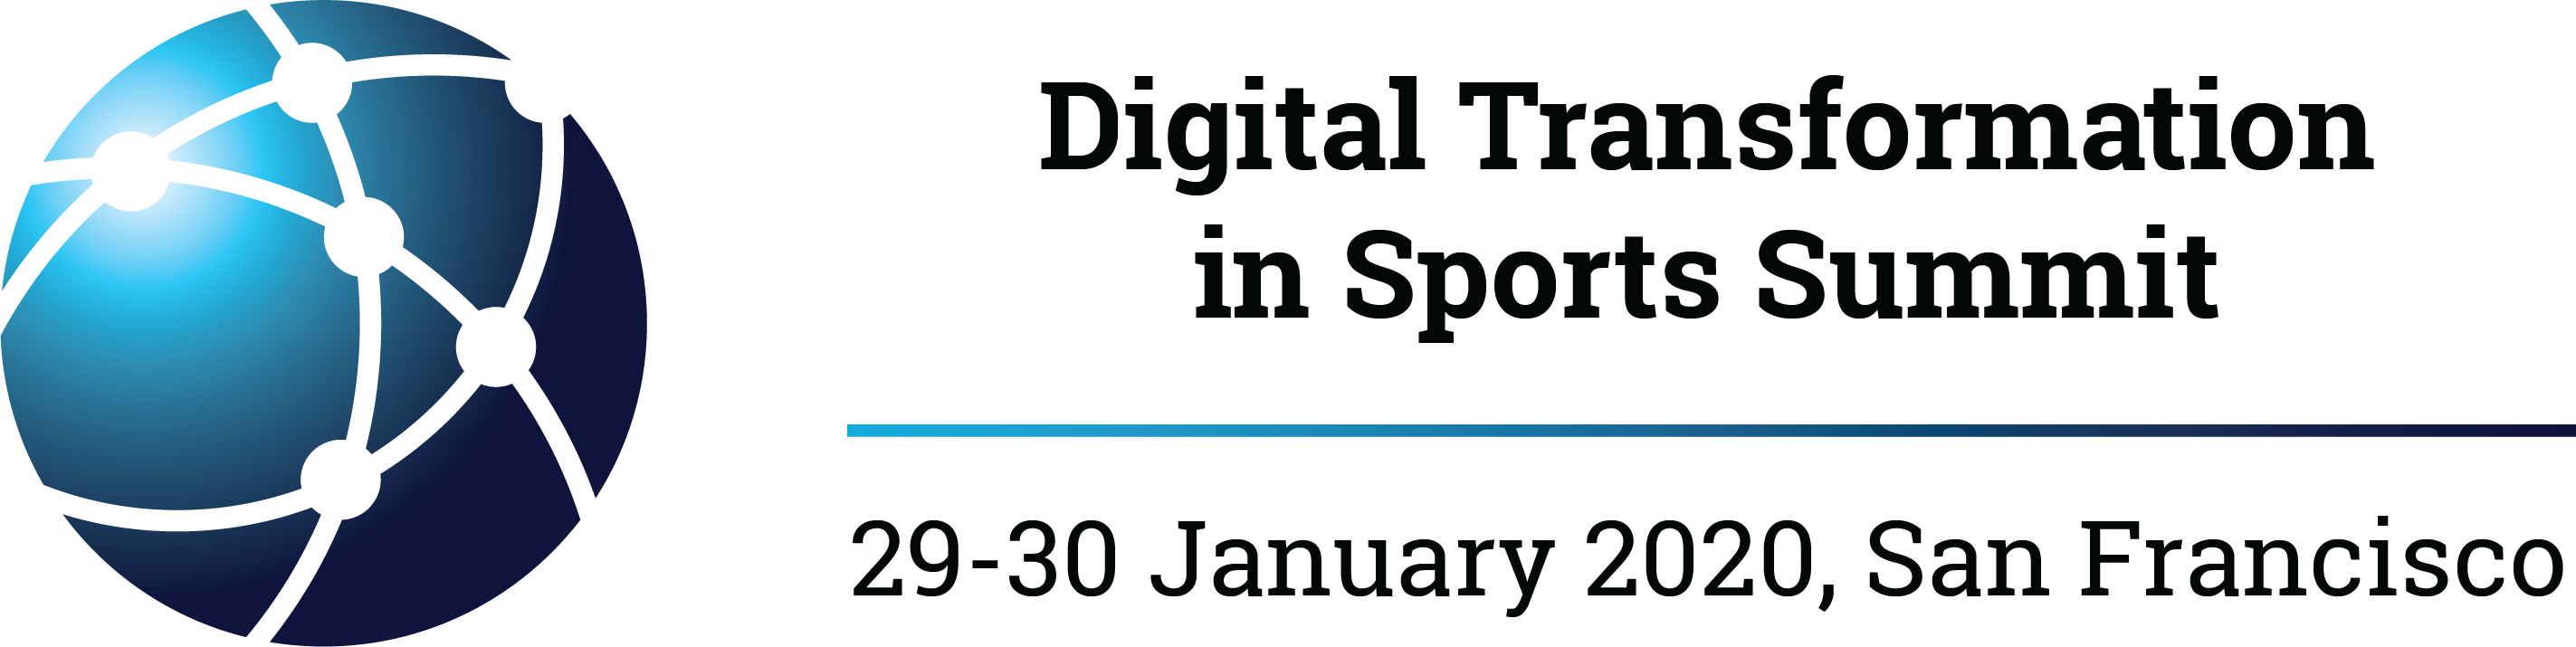 Digital Transformation in Sports Summit logo